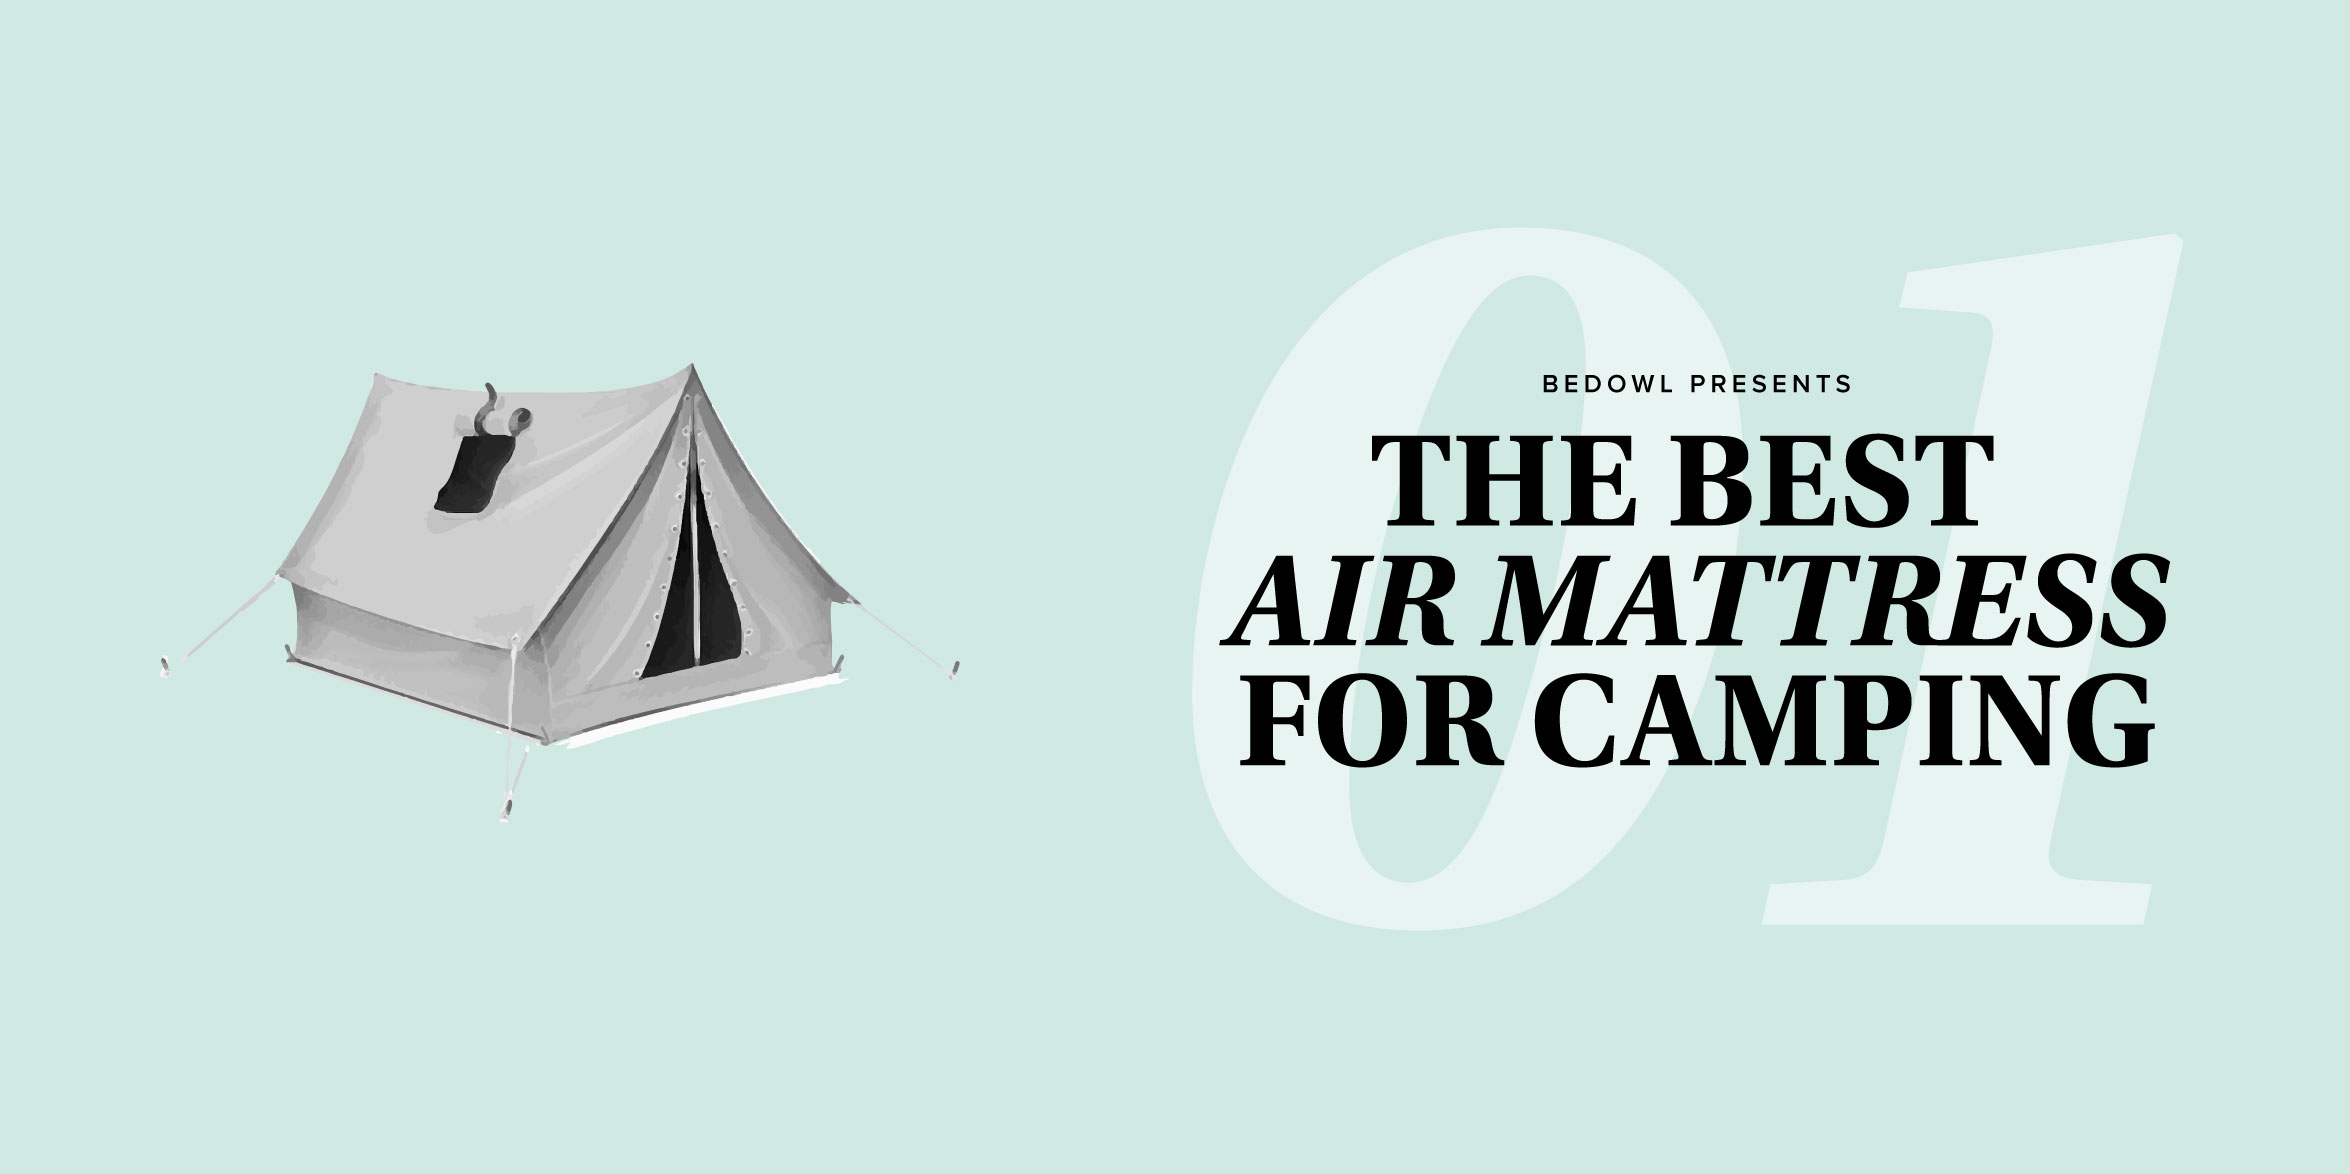 The Best Air Mattress for Camping by Bedowl